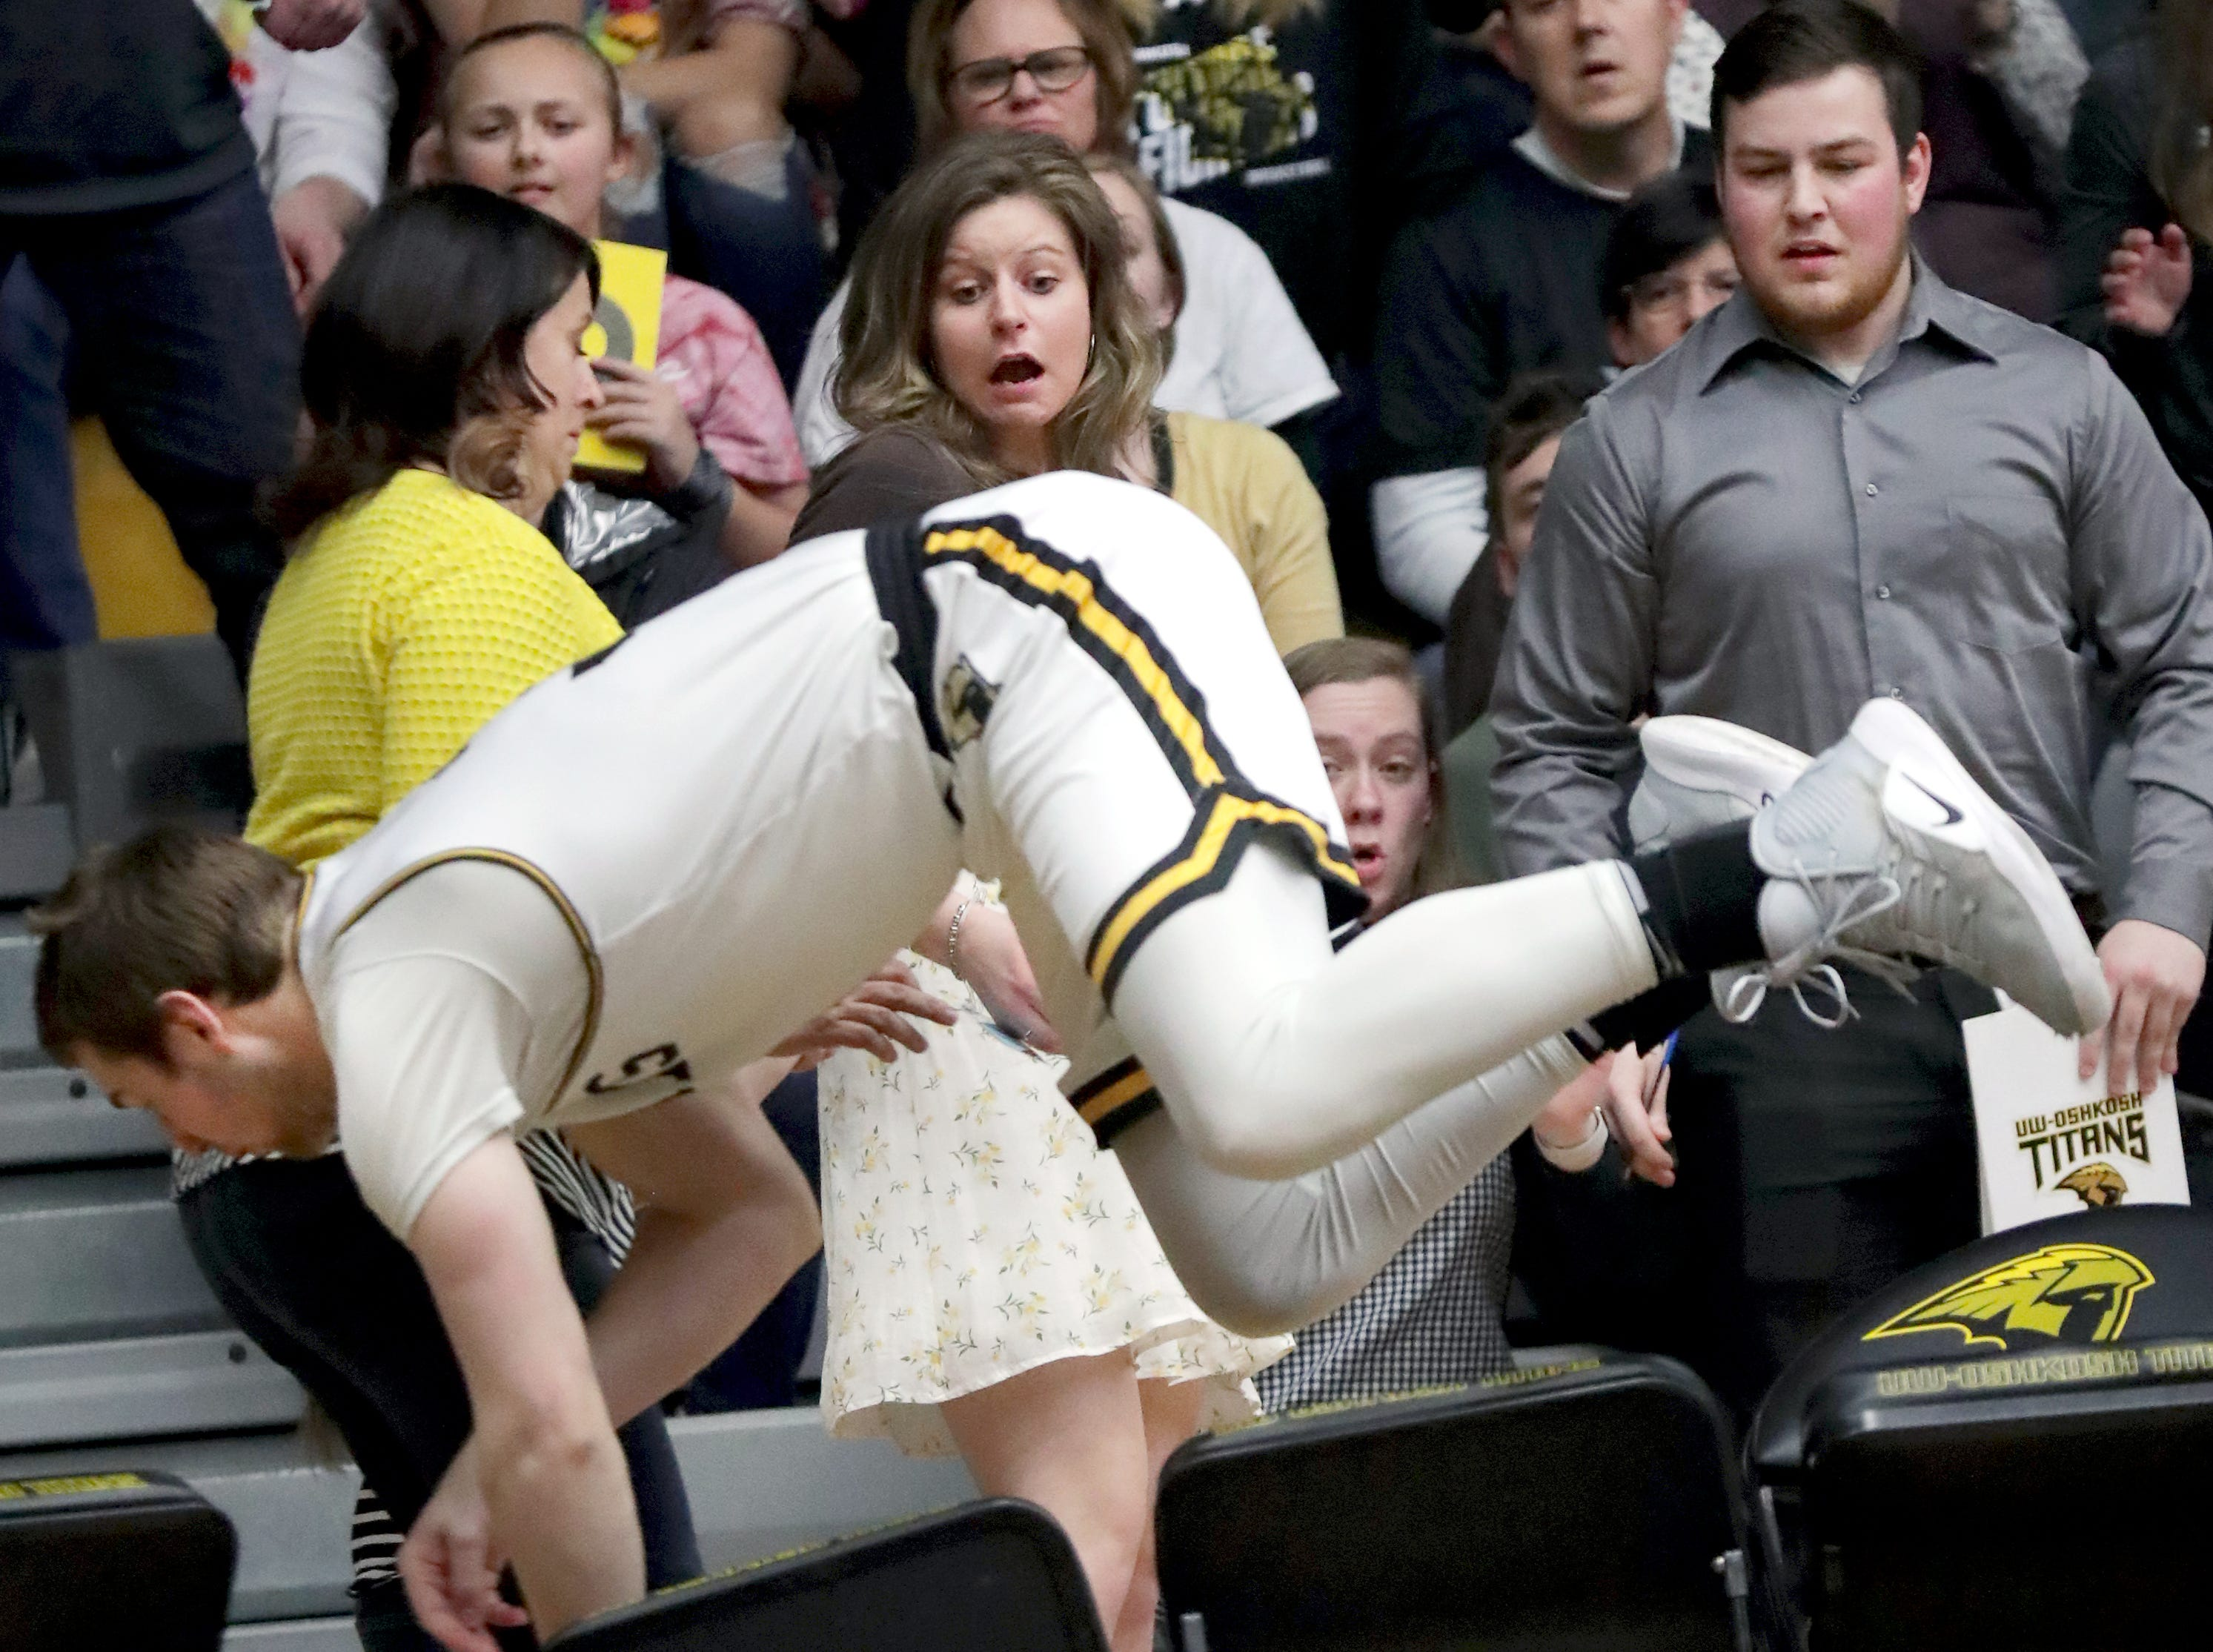 University of Wisconsin-Oshkosh's #3 chase a ball out of bounds against Loras College-Iowa during their NCAA DIII  Basketball Championship sectional game on Friday, March 8, 2019, at the Kolf Sports Center in Oshkosh, Wis. Oshkosh defeated Loras 86 to 75.Wm. Glasheen/USA TODAY NETWORK-Wisconsin.